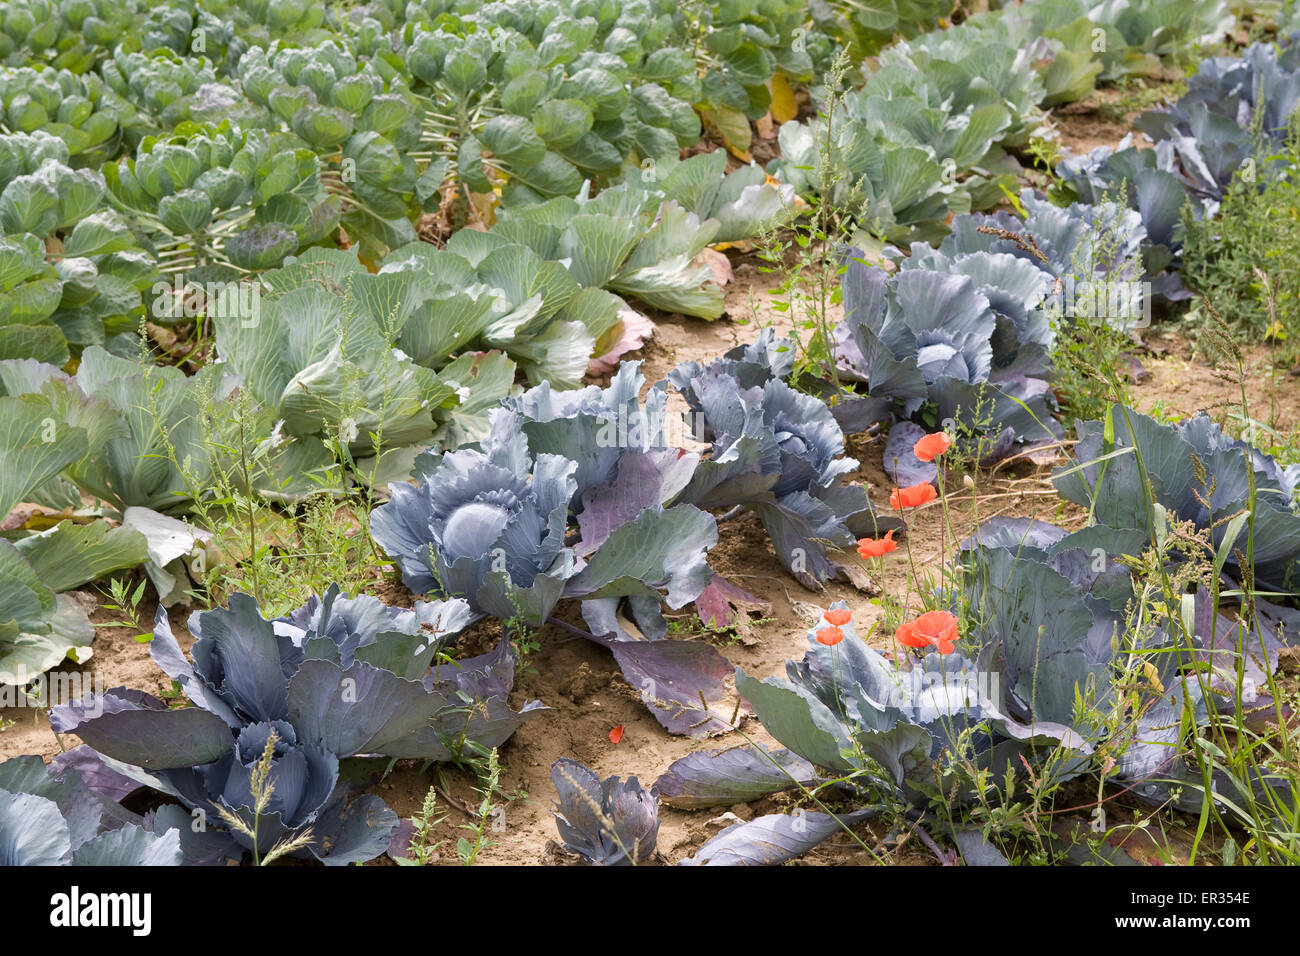 DEU, Germany, field with Brussels sprouts, white and red cabbage.  DEU, Deutschland, Feld mit Rosenkohl, Weisskohl, - Stock Image